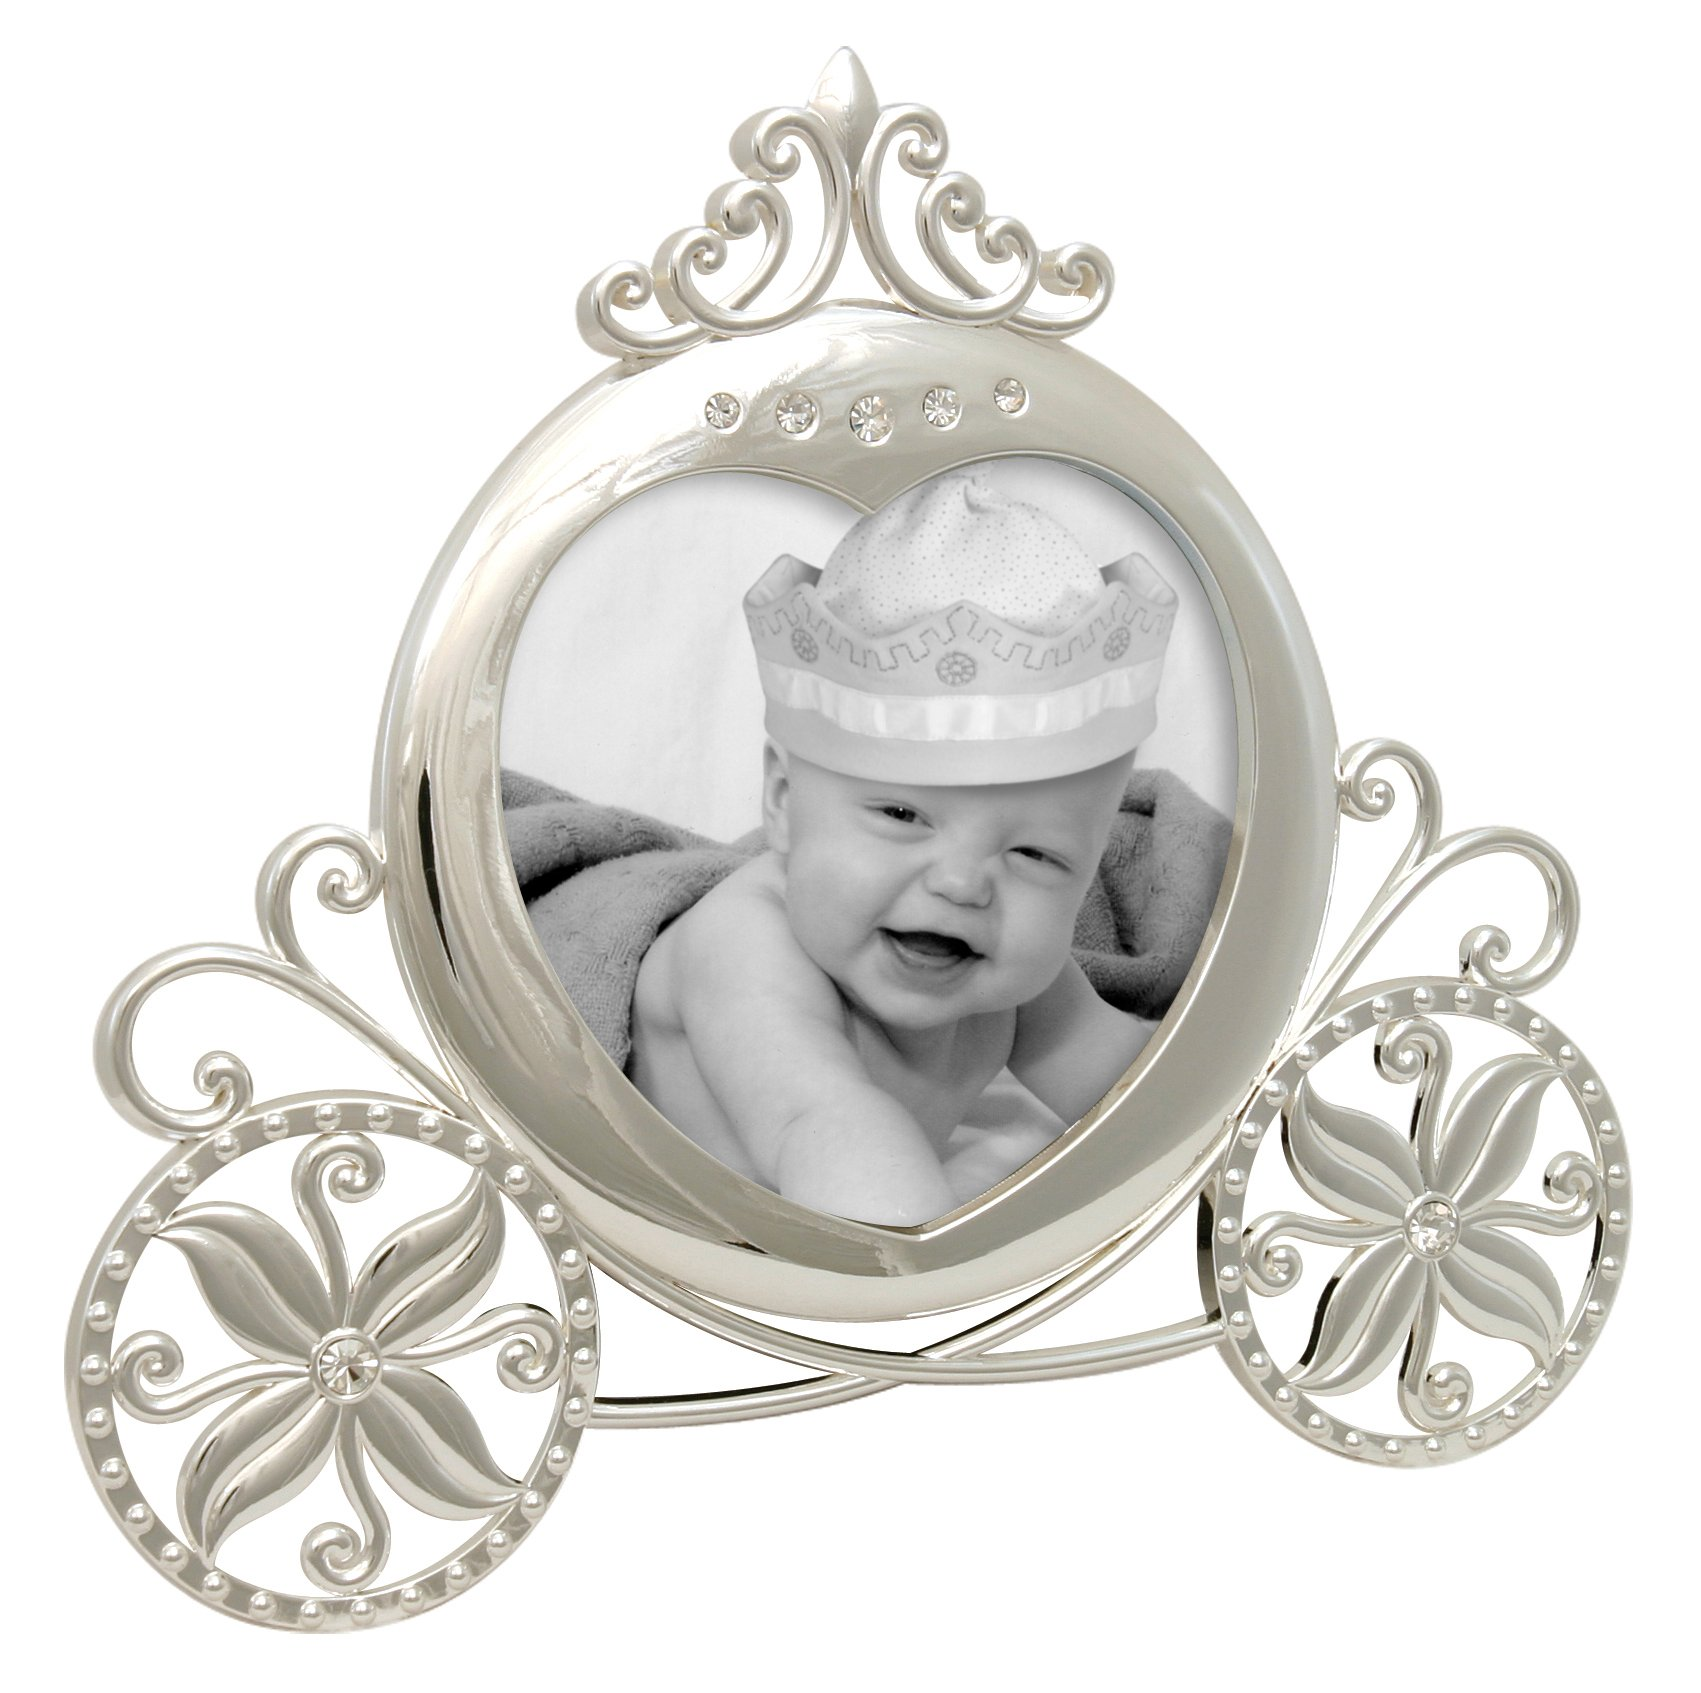 Stephan Baby Royalty Collection Keepsake Silver Plated Frame, Fairy Tale Carriage by Stephan Baby